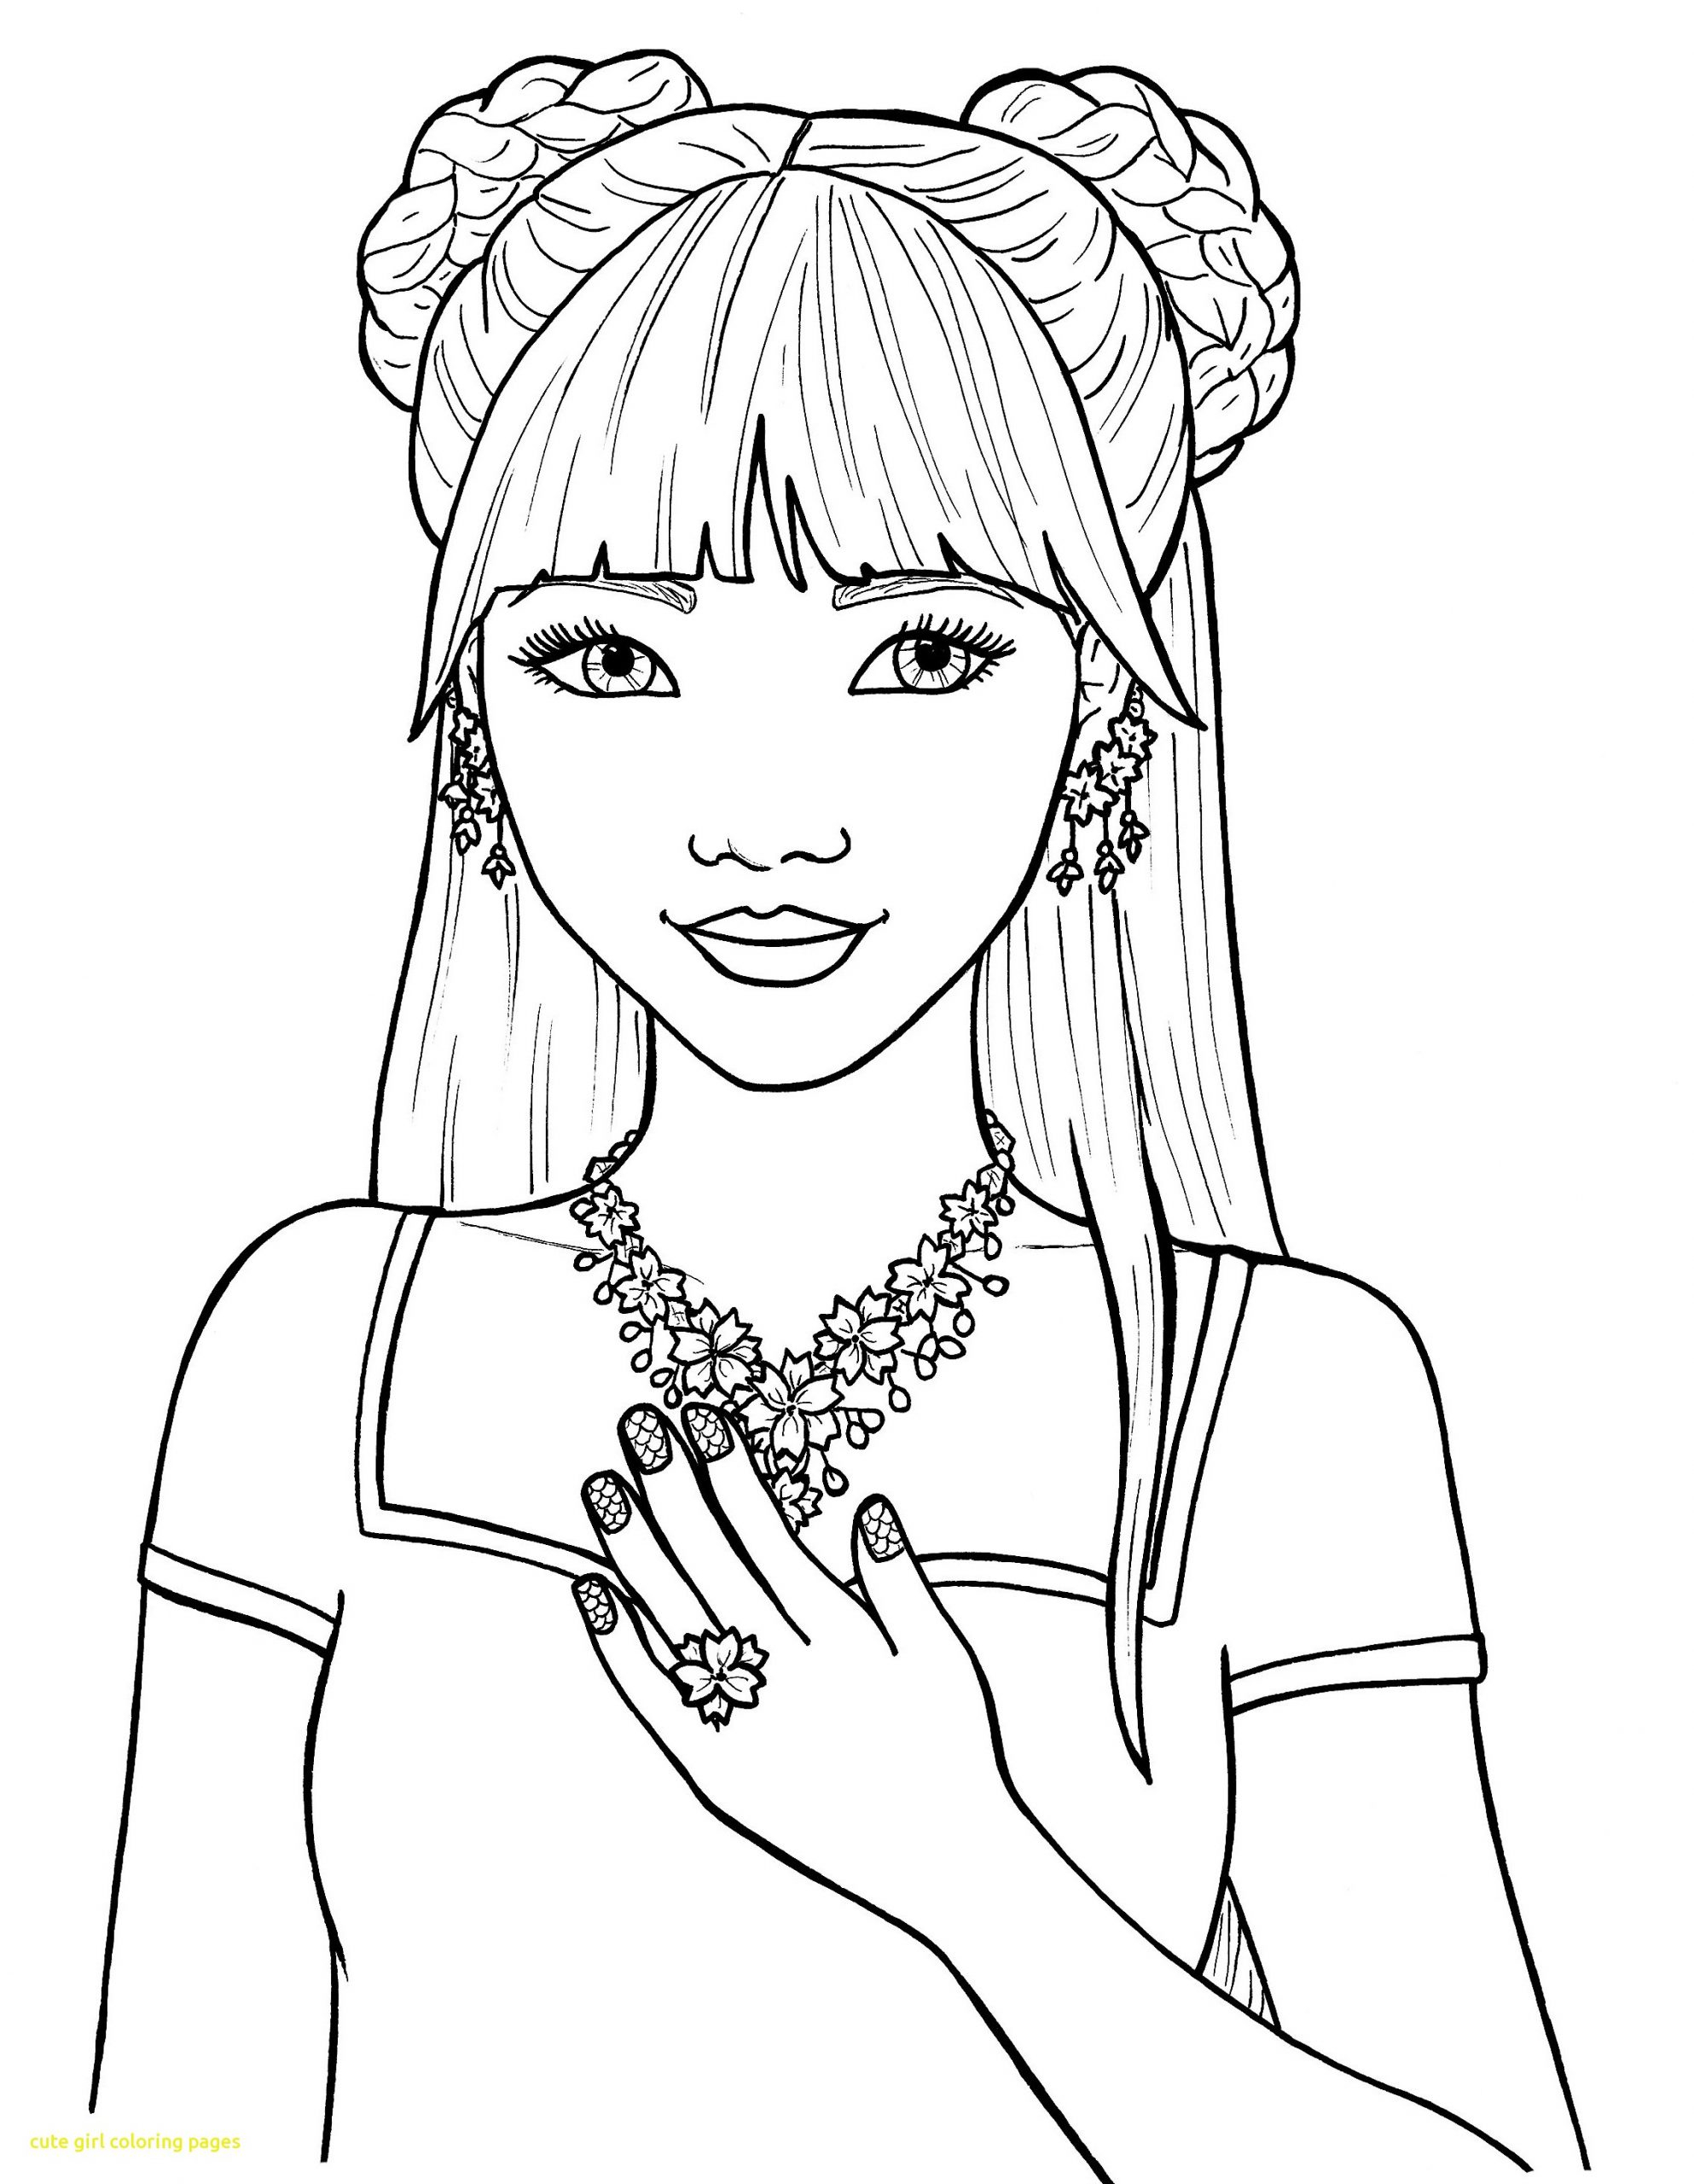 coloring pages 9 year old animal coloring pages for 9 year olds at getcoloringscom coloring old year 9 pages